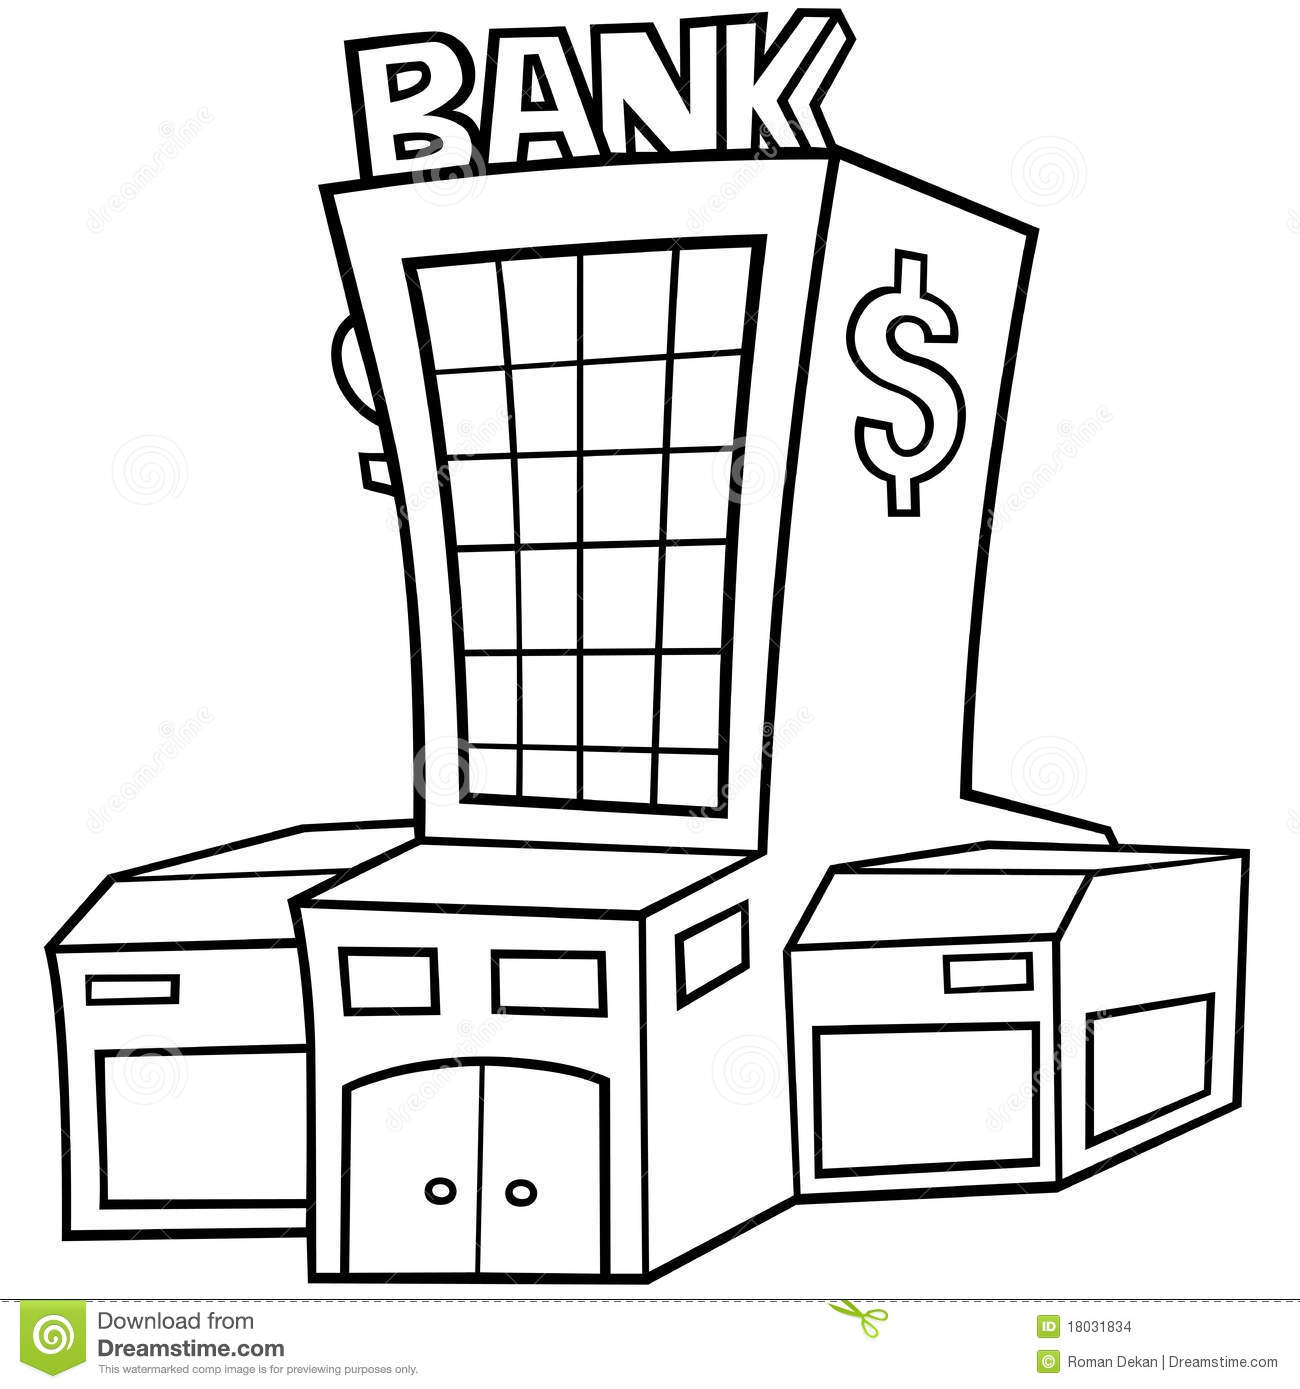 Bank stock vector. Illustration of finance, architecture